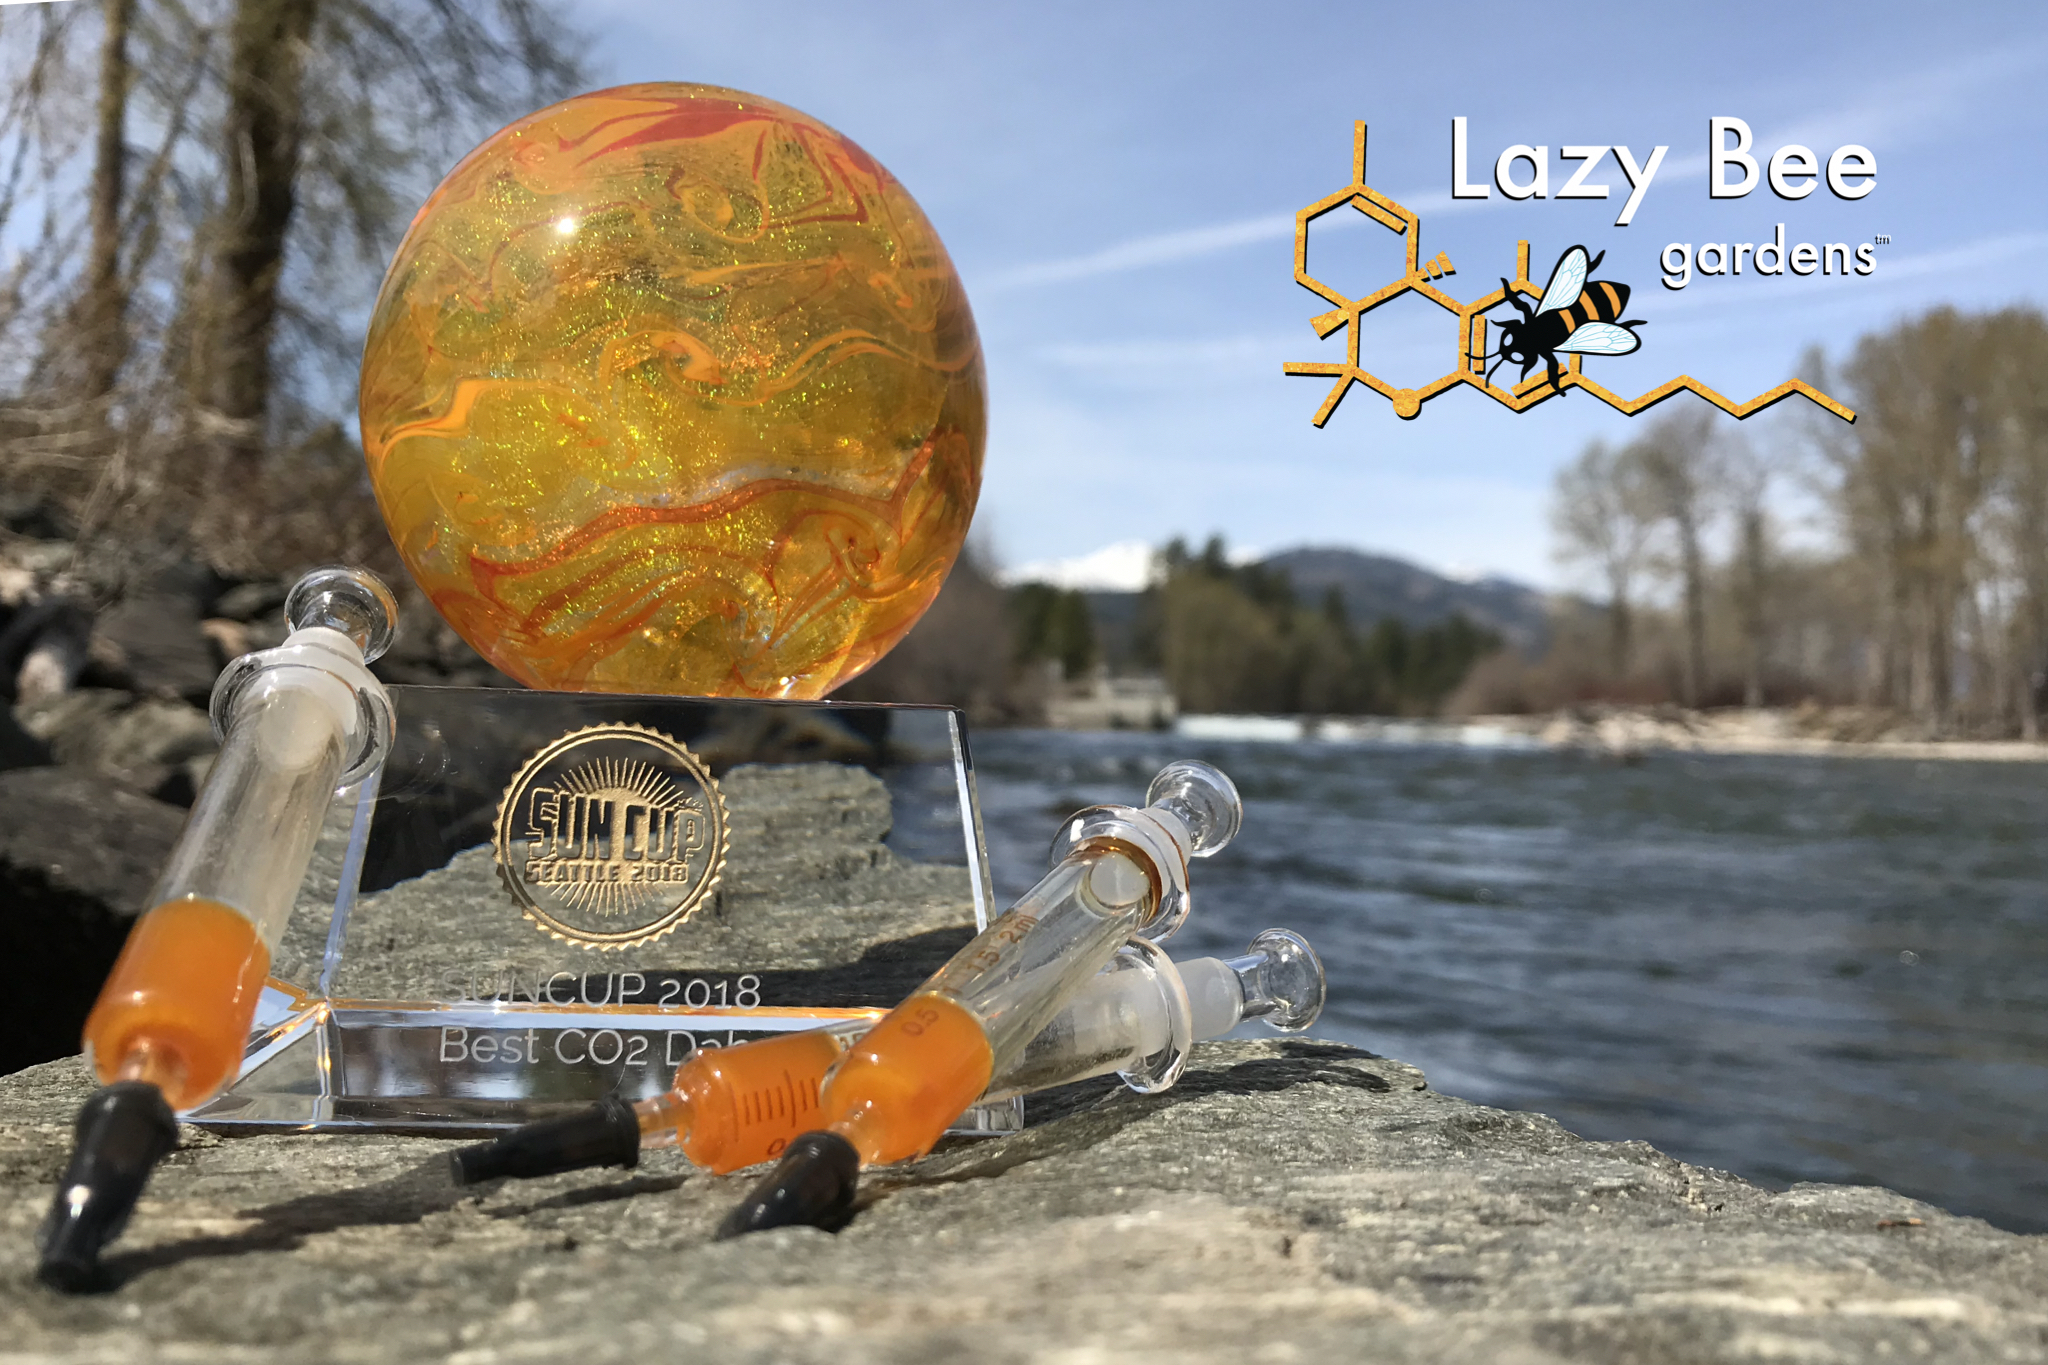 Lazy Bee Gardens CO2 Concentrate Tangie winner of Best CO2 Dap in 2018 Sun Cup